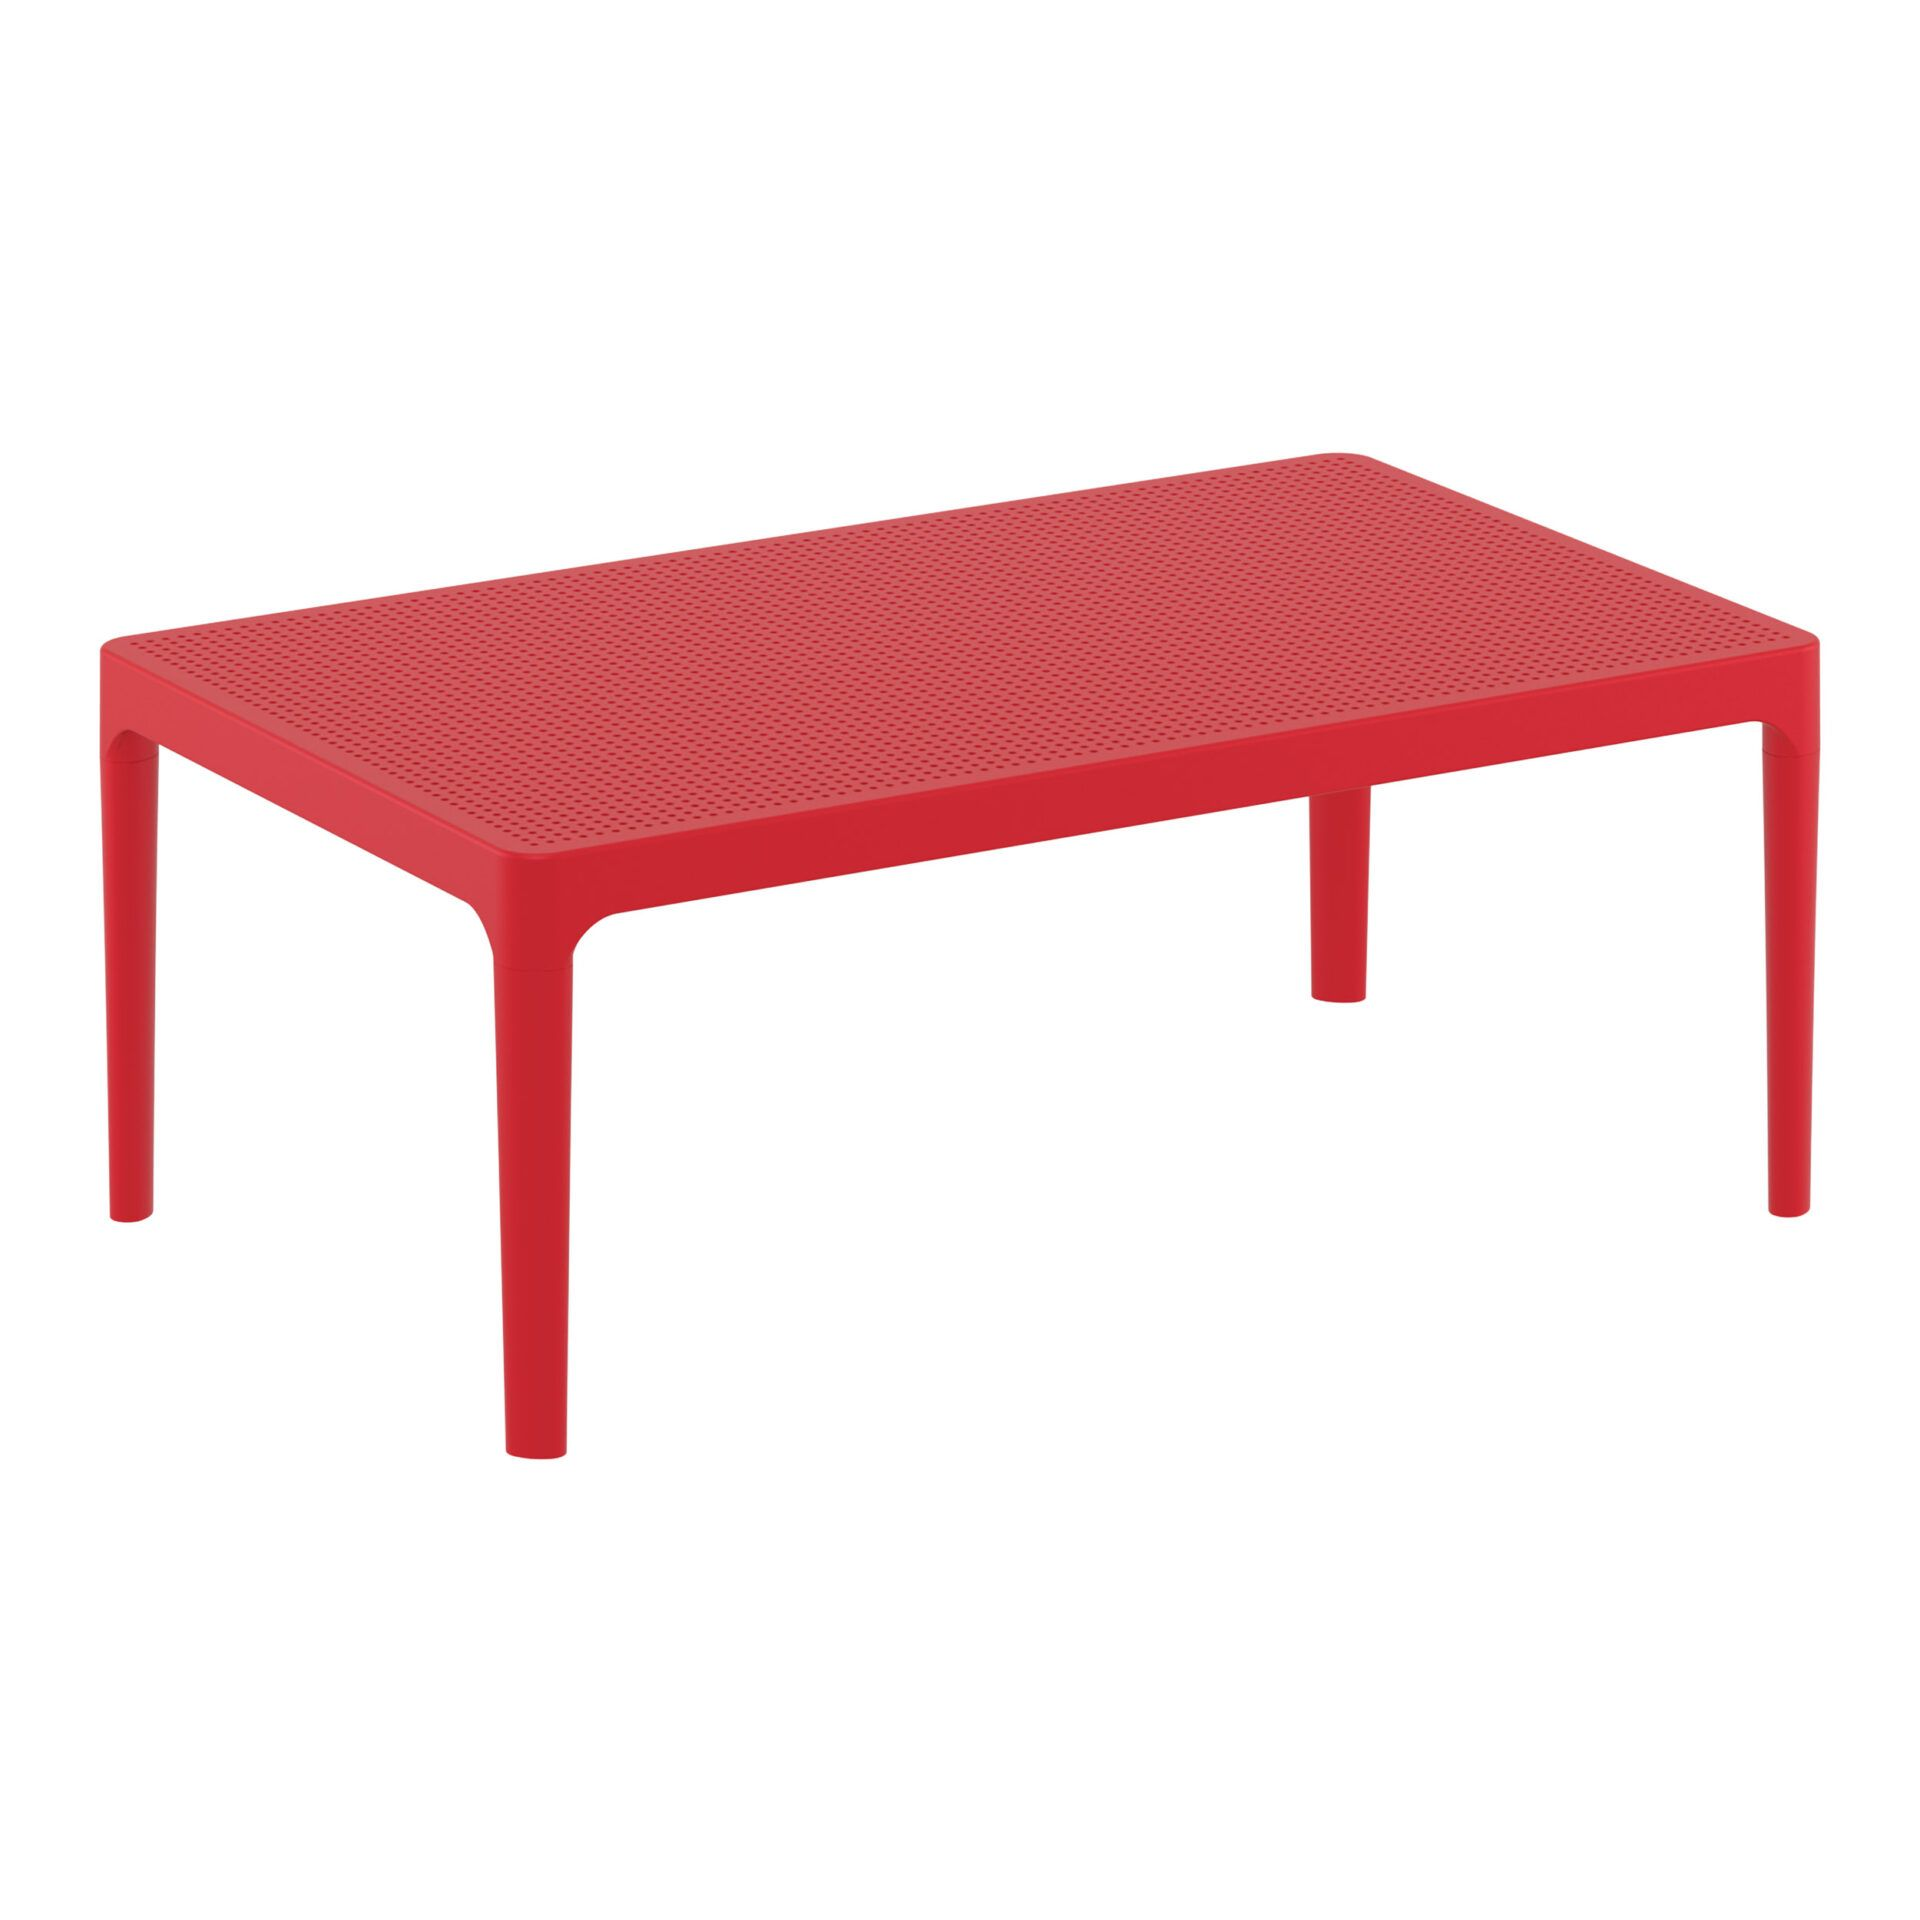 polypropylene outdoor sky lounge coffee table red front side